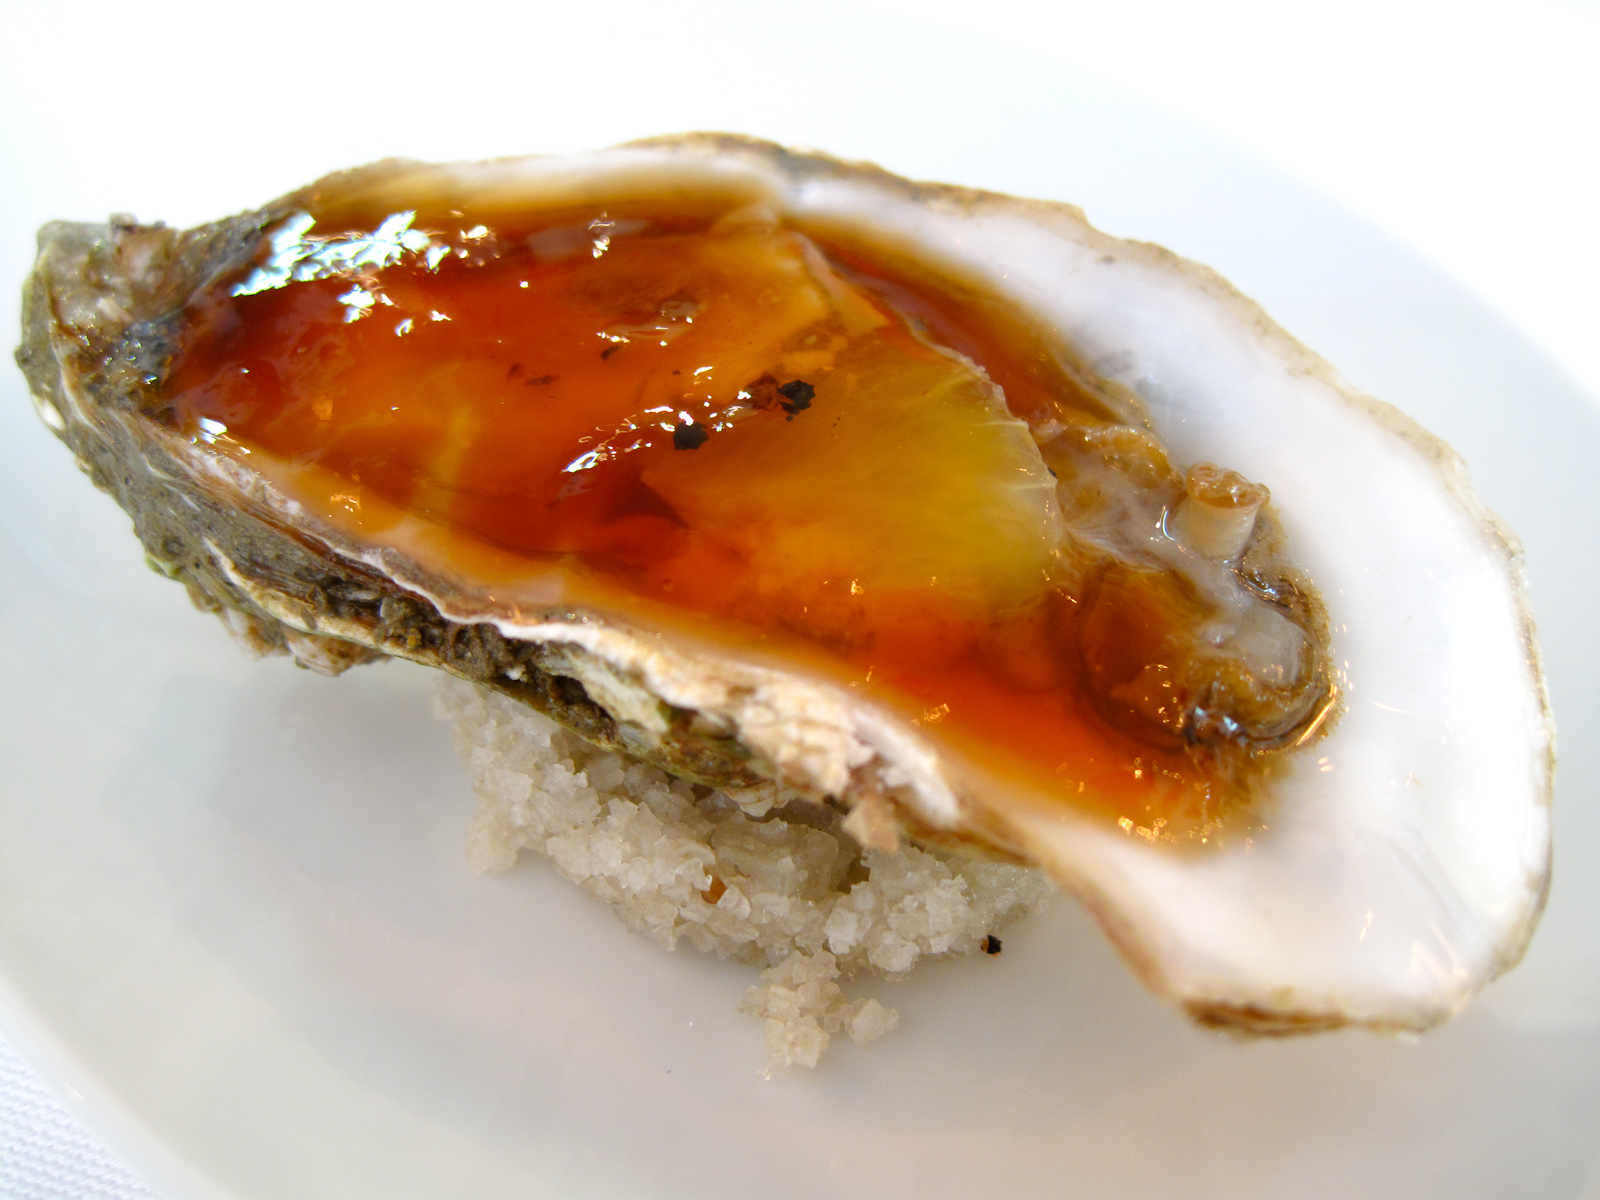 La Bigarrade - Oyster in bBonito gel�e, lime, wild pepper